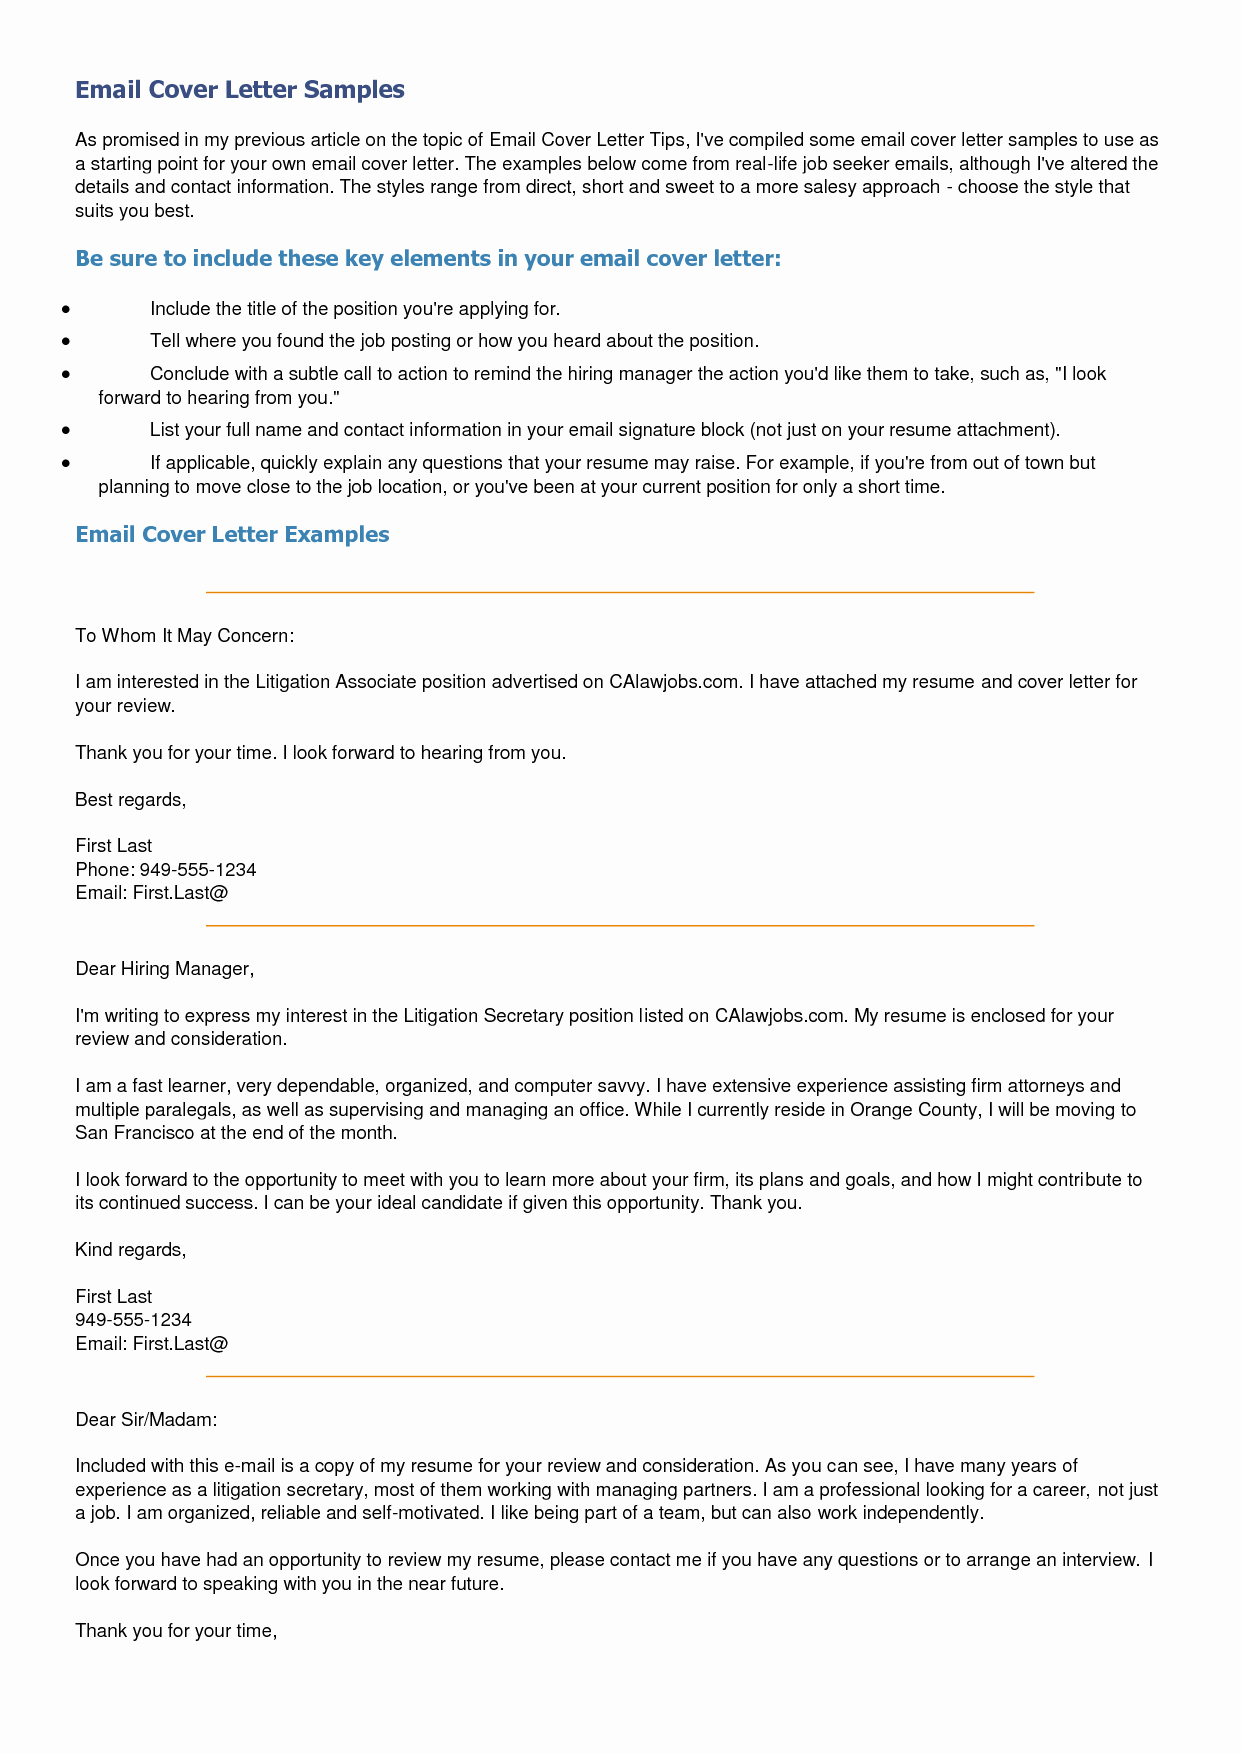 Emailed Cover Letter format Unique 12 Tips for Better Email Cover Letters